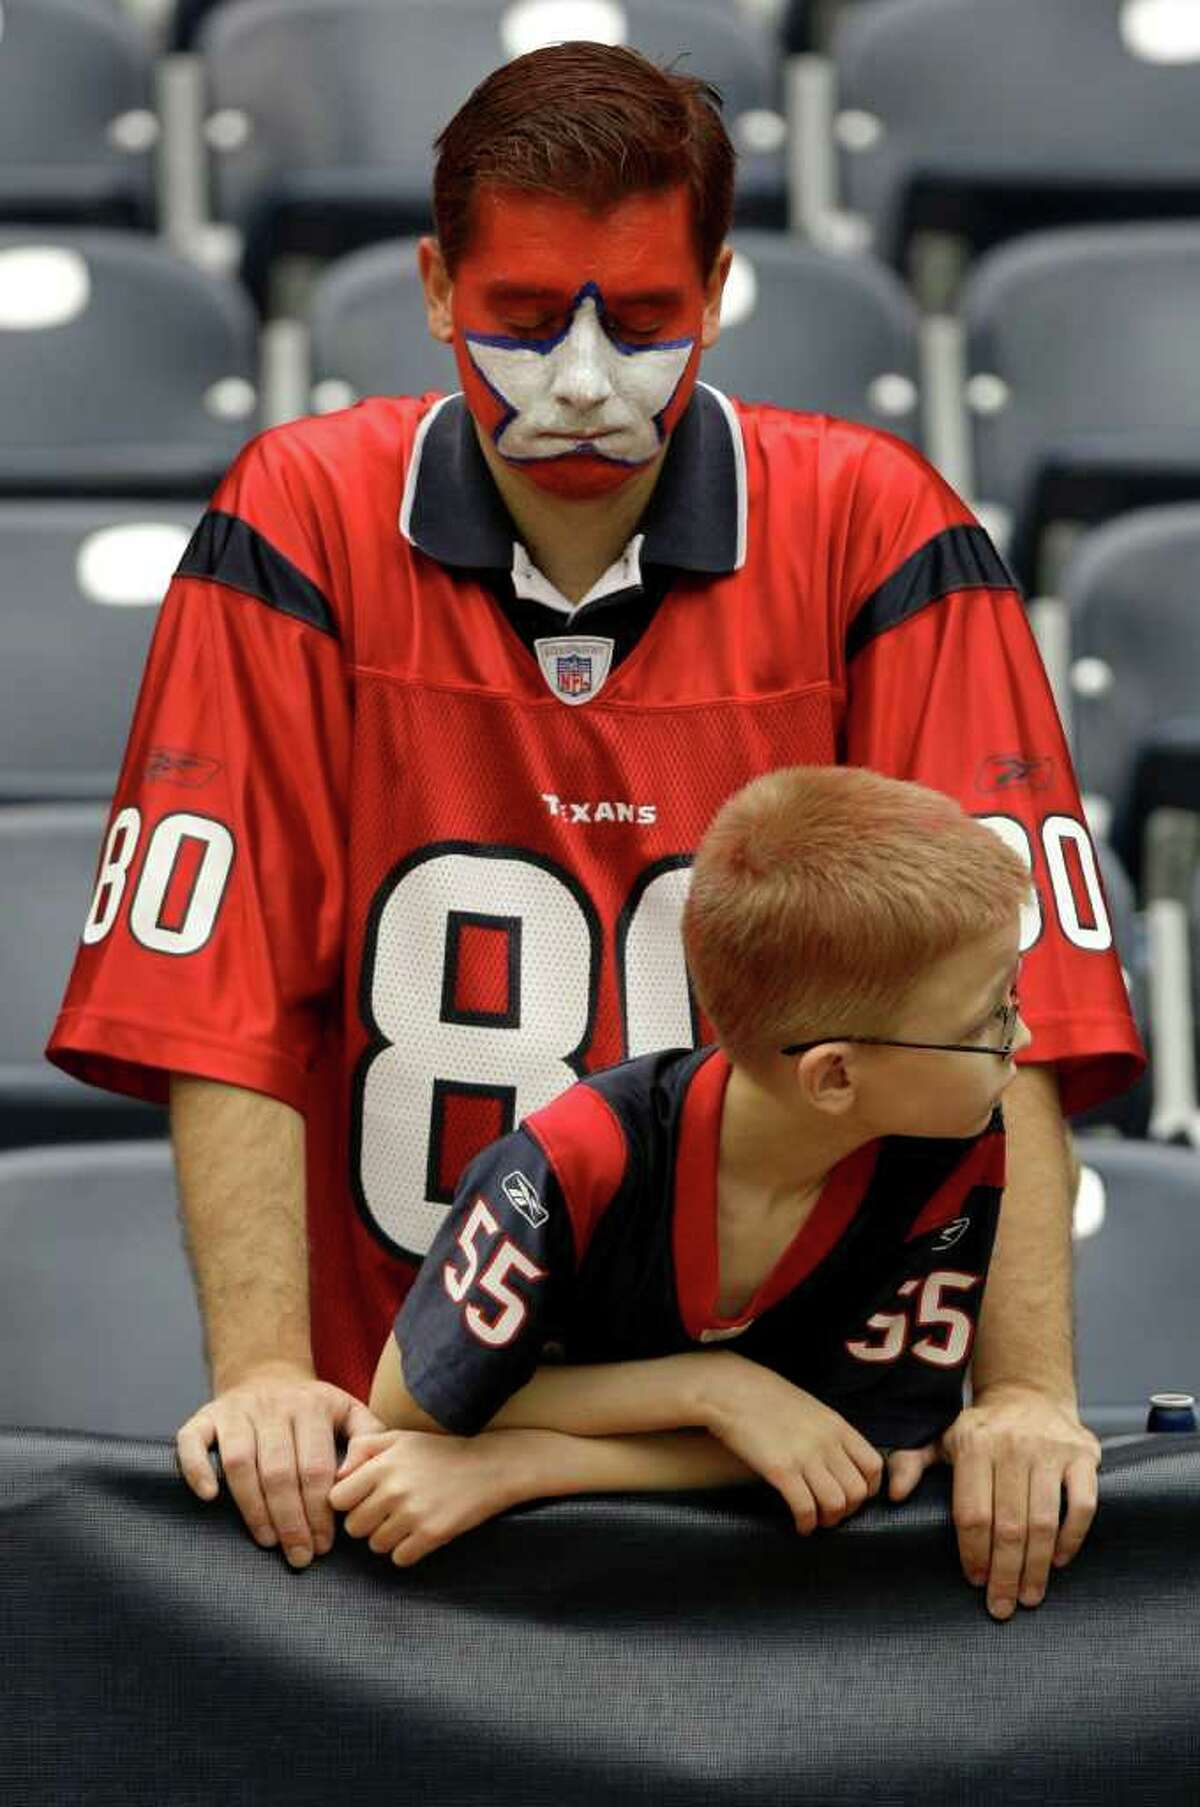 Houston Texans fan Chris Reid, with Joshua Reid, reacts to the Texans loss the Jacksonville Jaguars at the end of an NFL football game at Reliant Stadium Sunday, Sept. 27, 2009, in Houston. Jaguars beat the Texans 31-24. ( Brett Coomer / Chronicle )